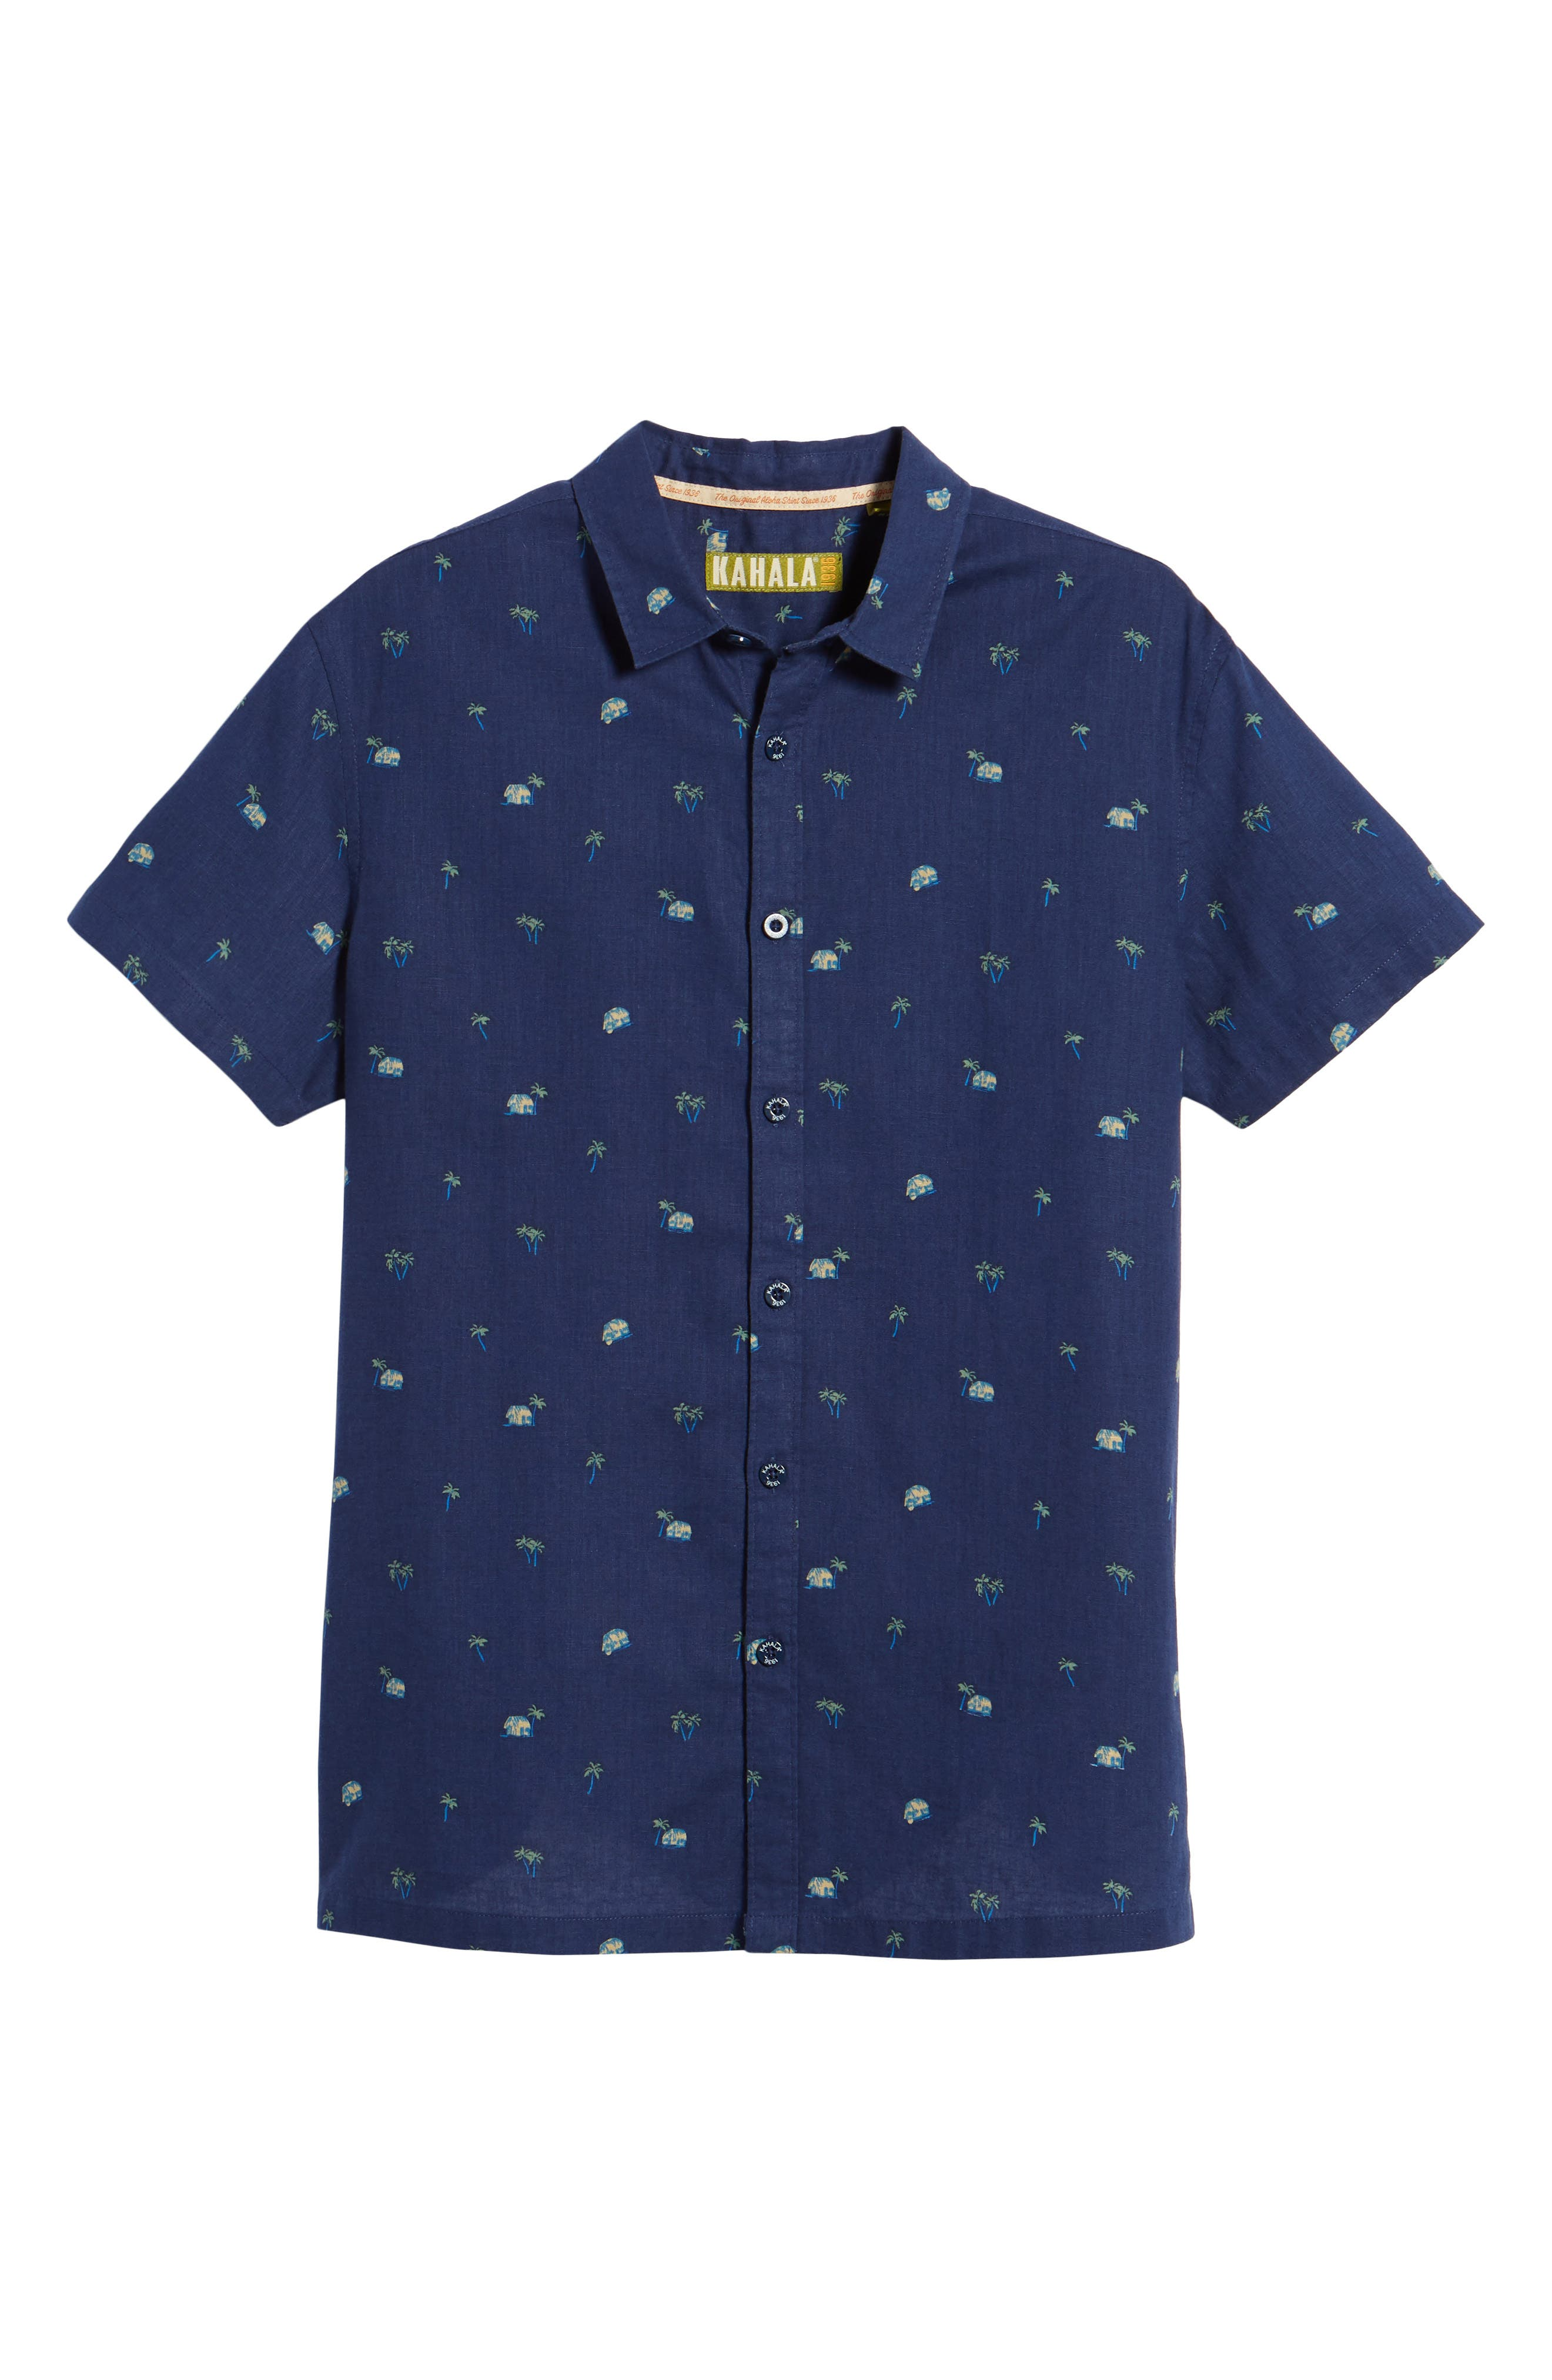 Hale Niu Trim Fit Linen Blend Camp Shirt,                             Alternate thumbnail 6, color,                             Navy